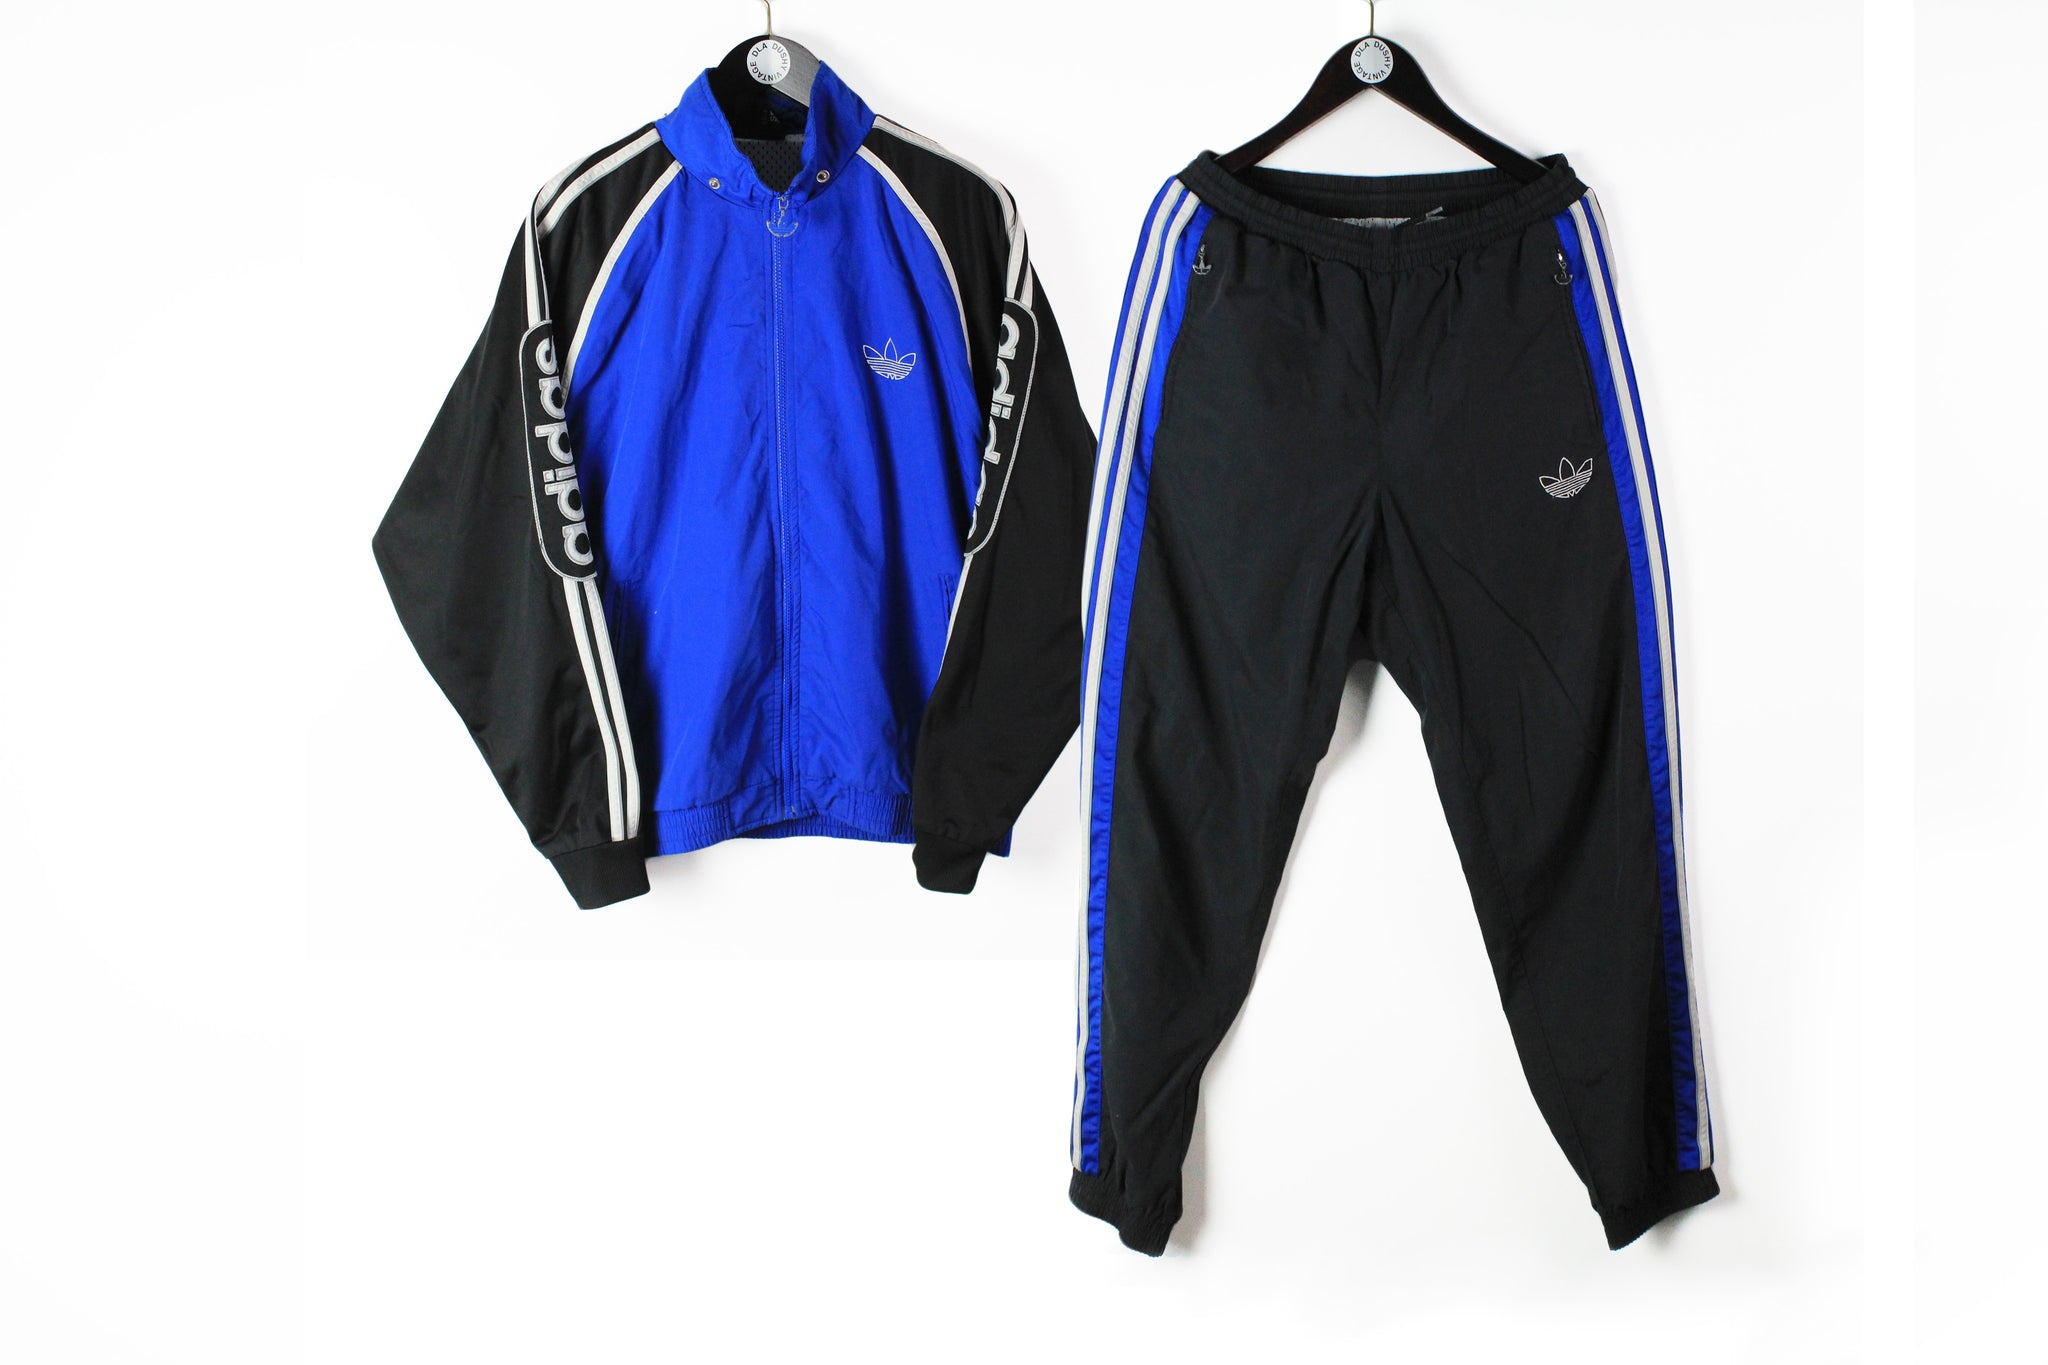 Vintage Adidas Tracksuit Medium / Large blue black big logo 90s sport suit